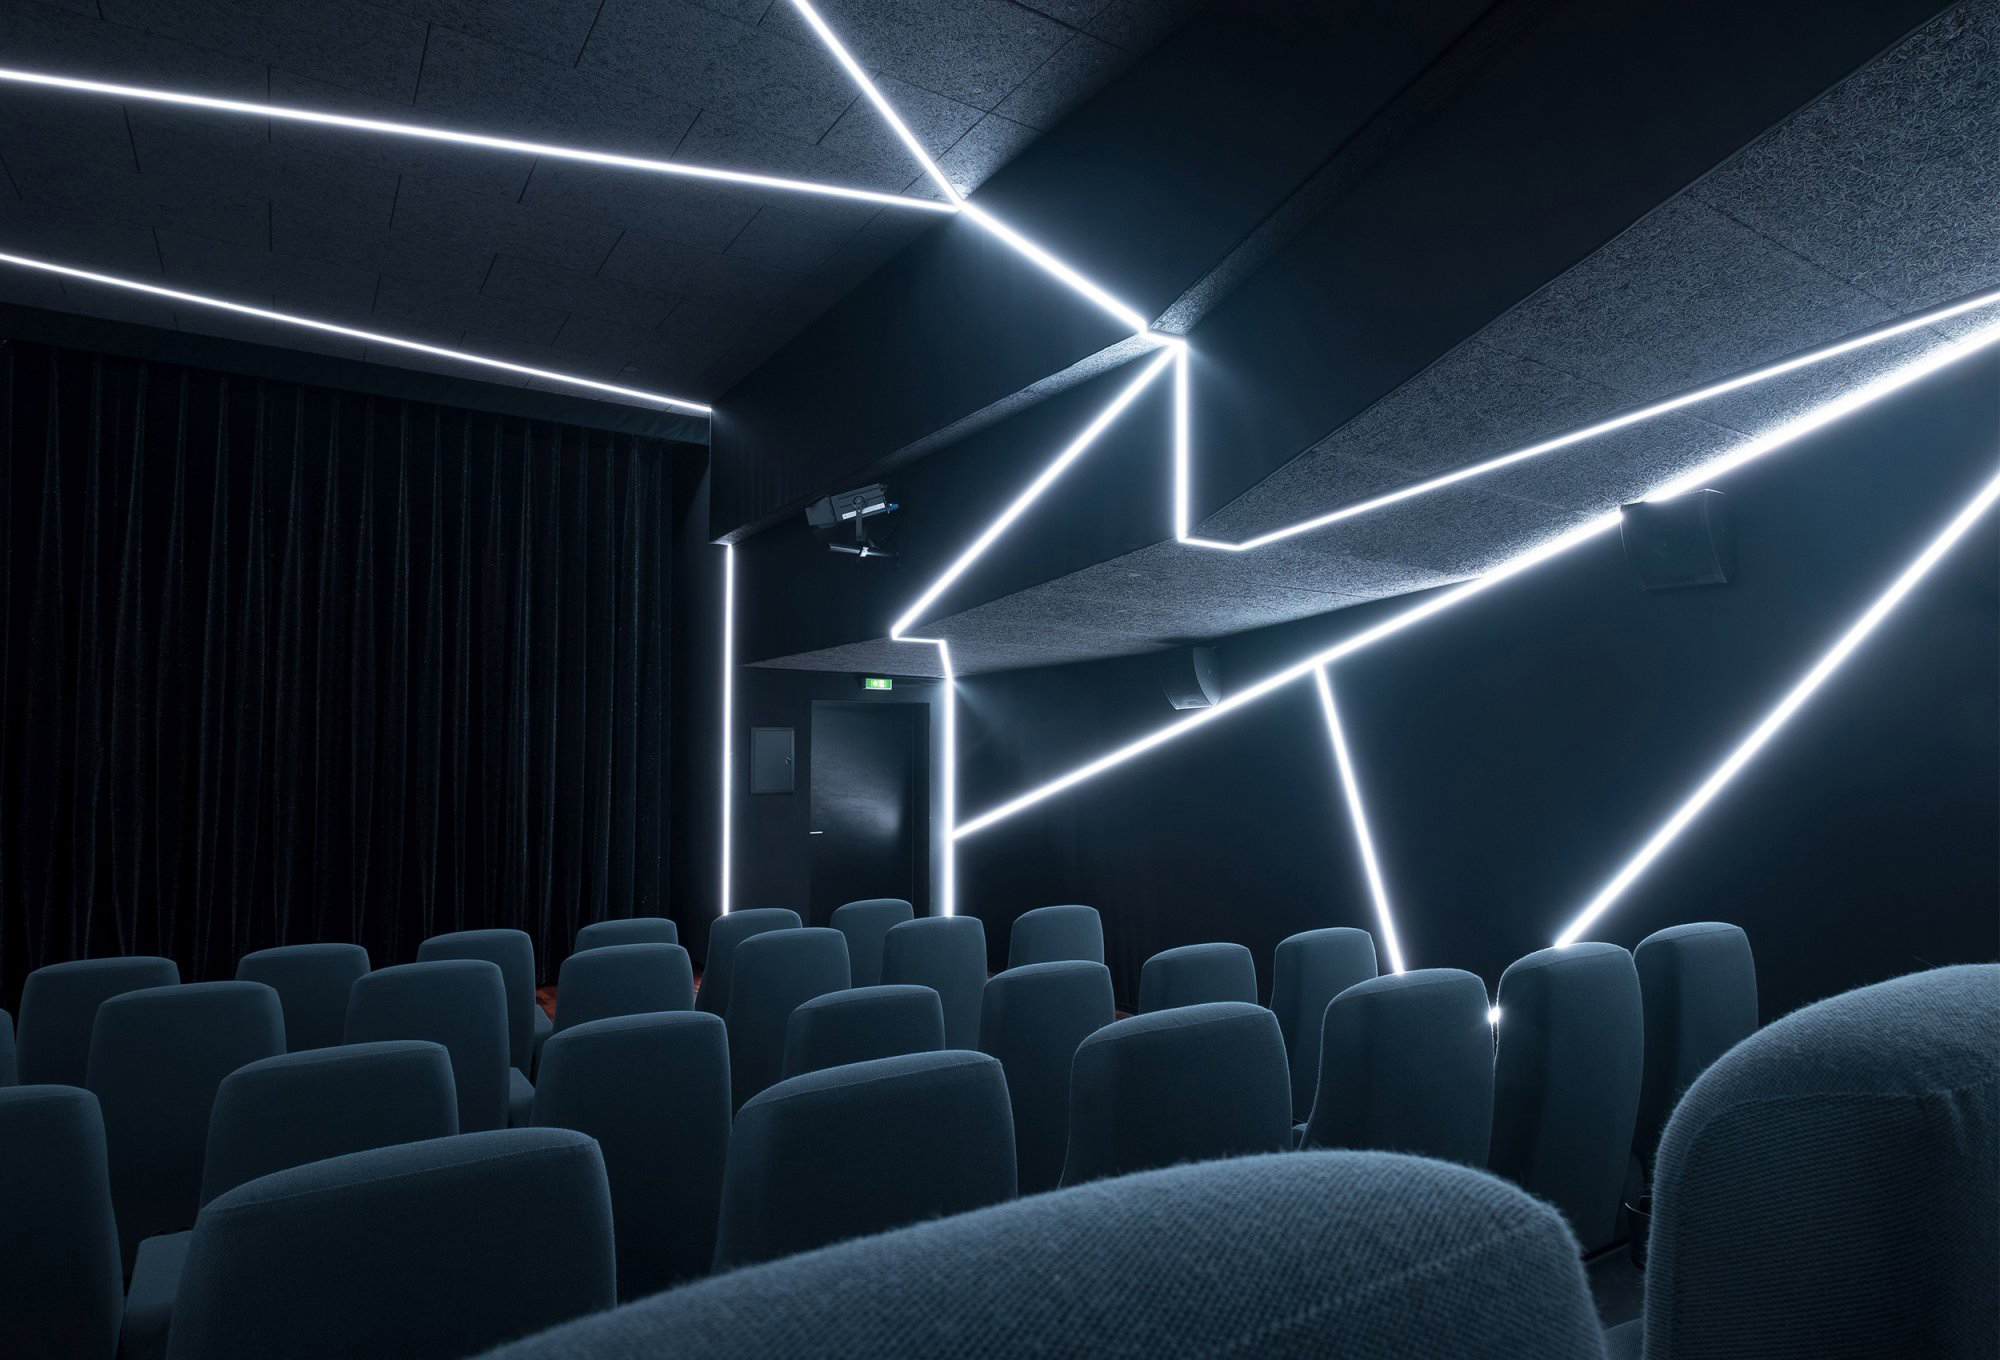 Delphi Lux cinema in Berlin